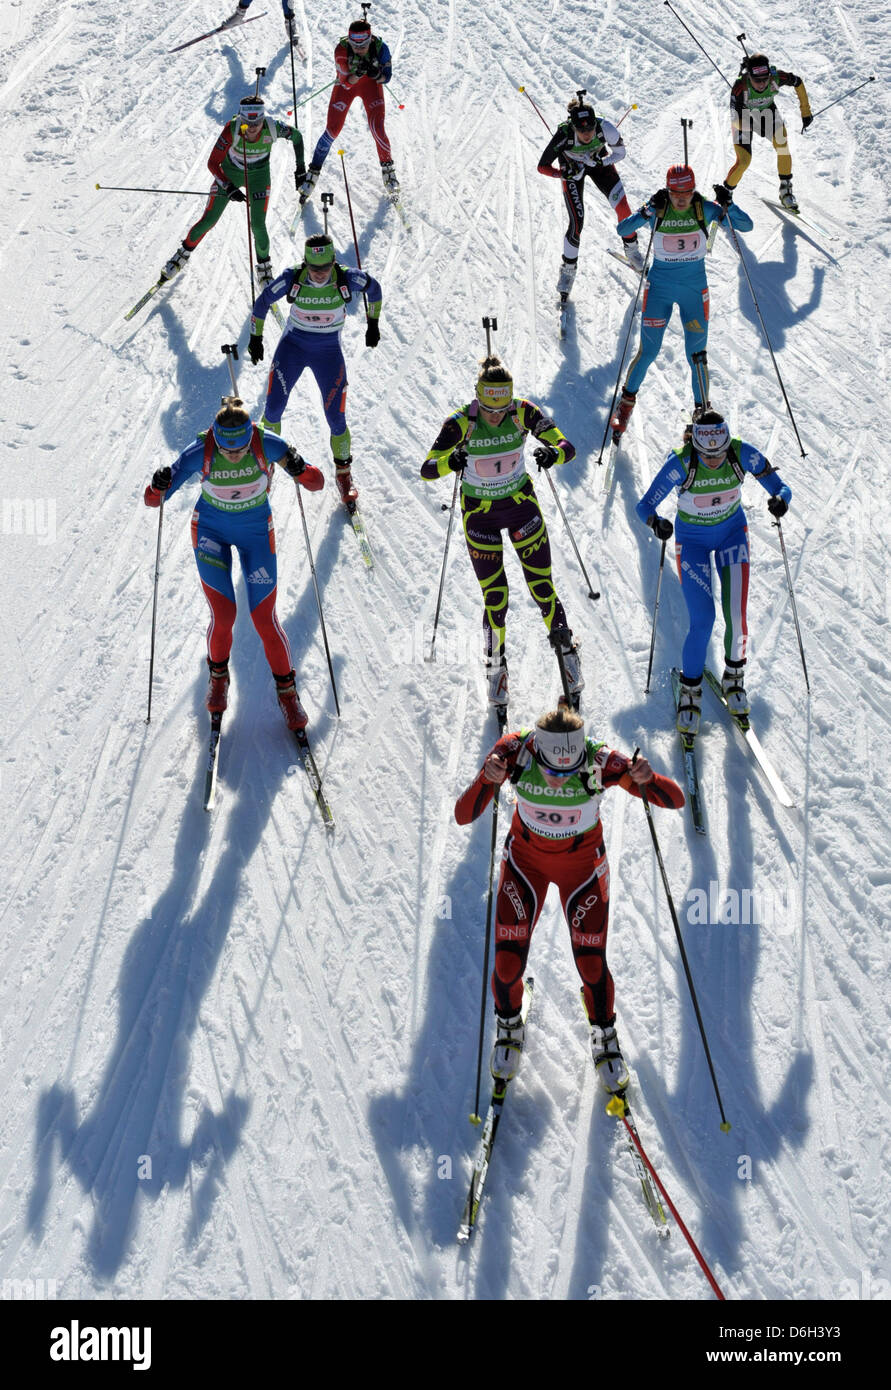 The female biathletes start in the mixed relay event of the Biathlon world championship 2012 at the Chiemgau Arena - Stock Image